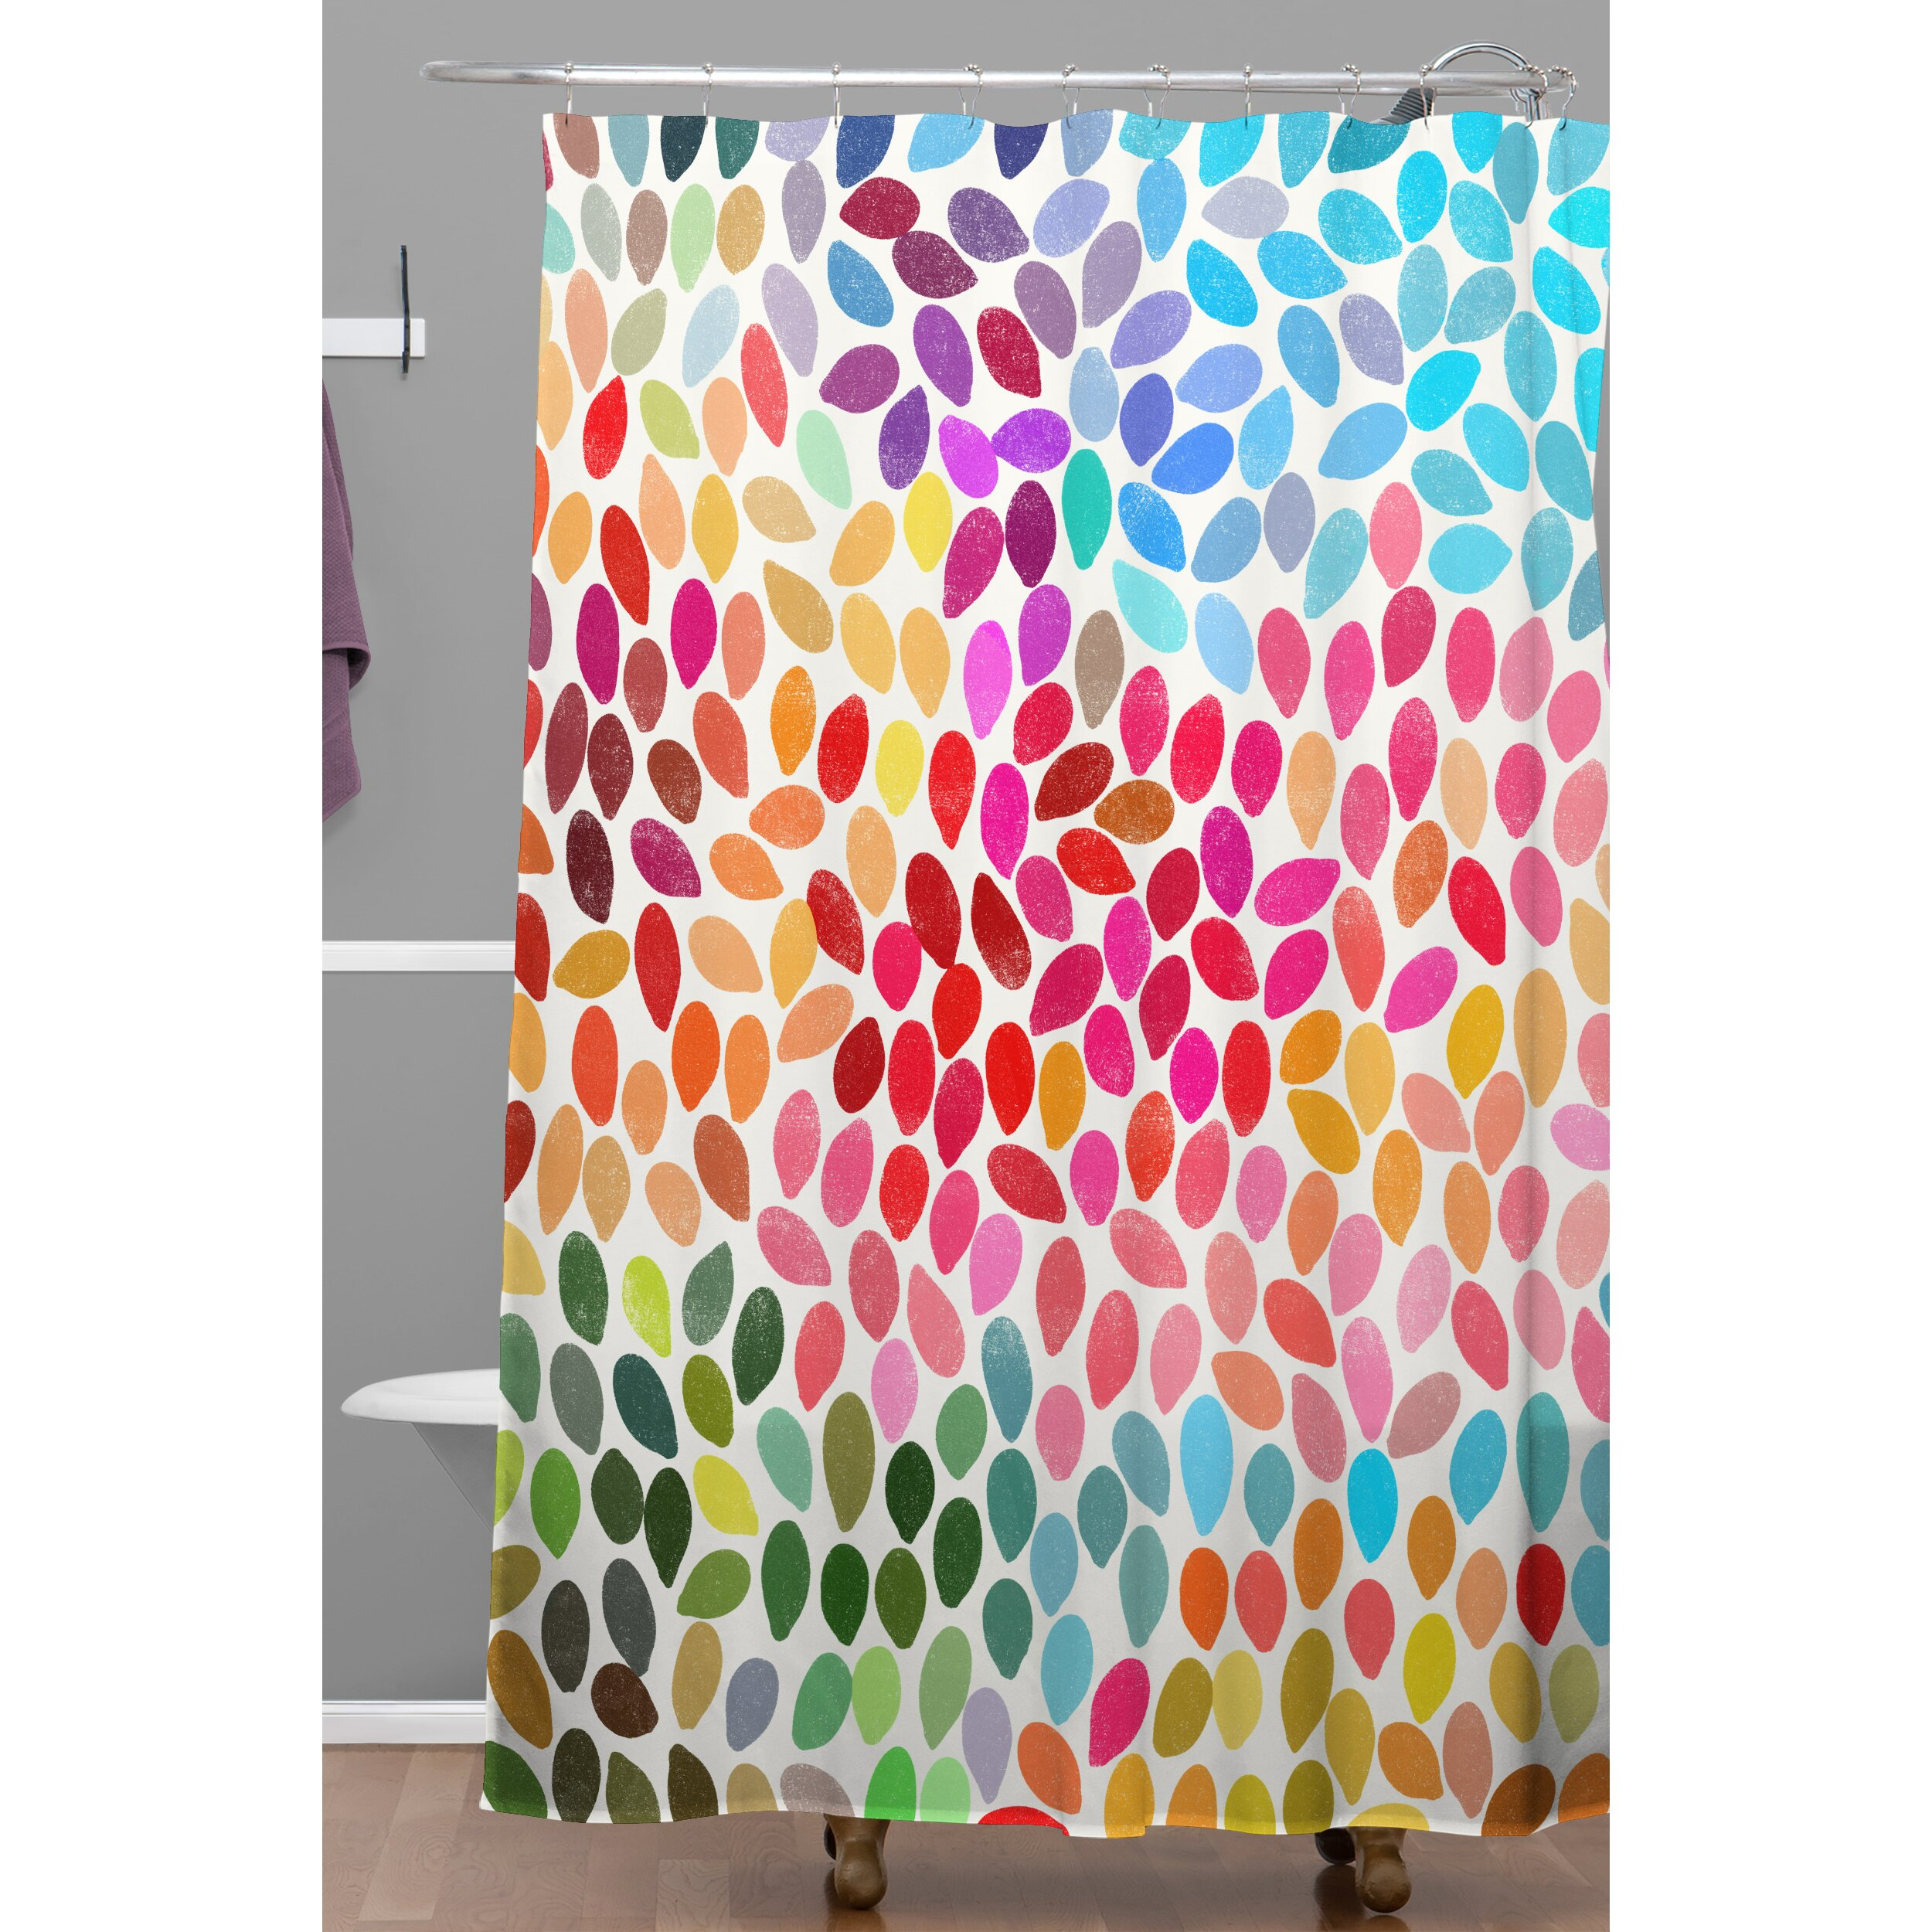 deny shower curtains deny designs aquios shower curtain target  - deny designs garima dhawan dots rain shower curtain deny